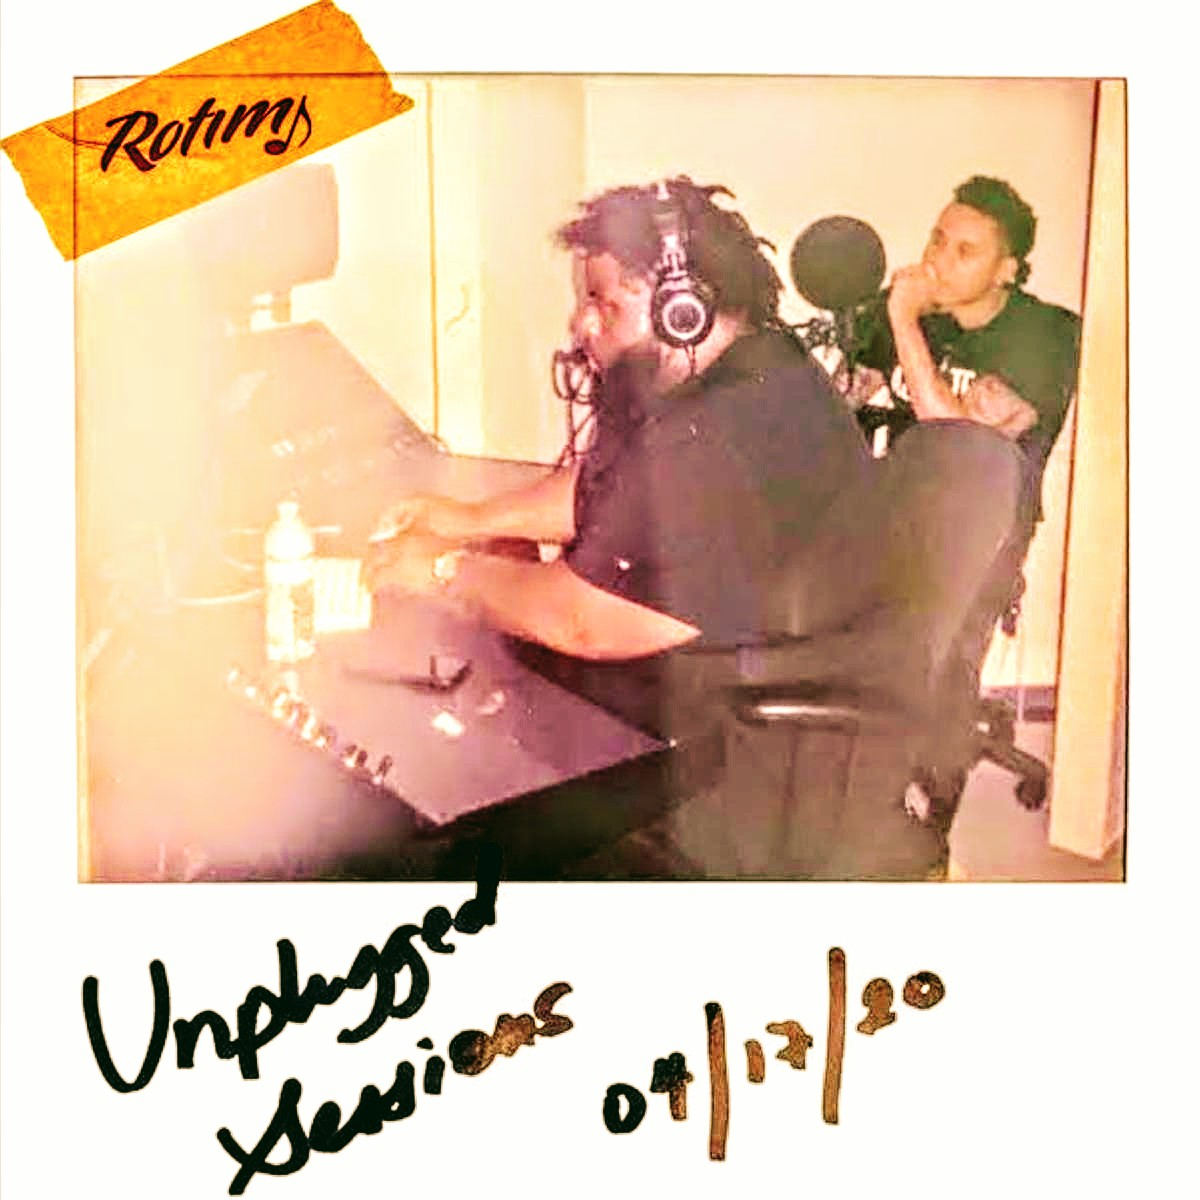 (Source:  https://www.hotnewhiphop.com/rotimi-shares-six-track-acoustic-unplugged-sessions-ep-new-mixtape.120274.html0; Edited By Lauren Kaye Clark